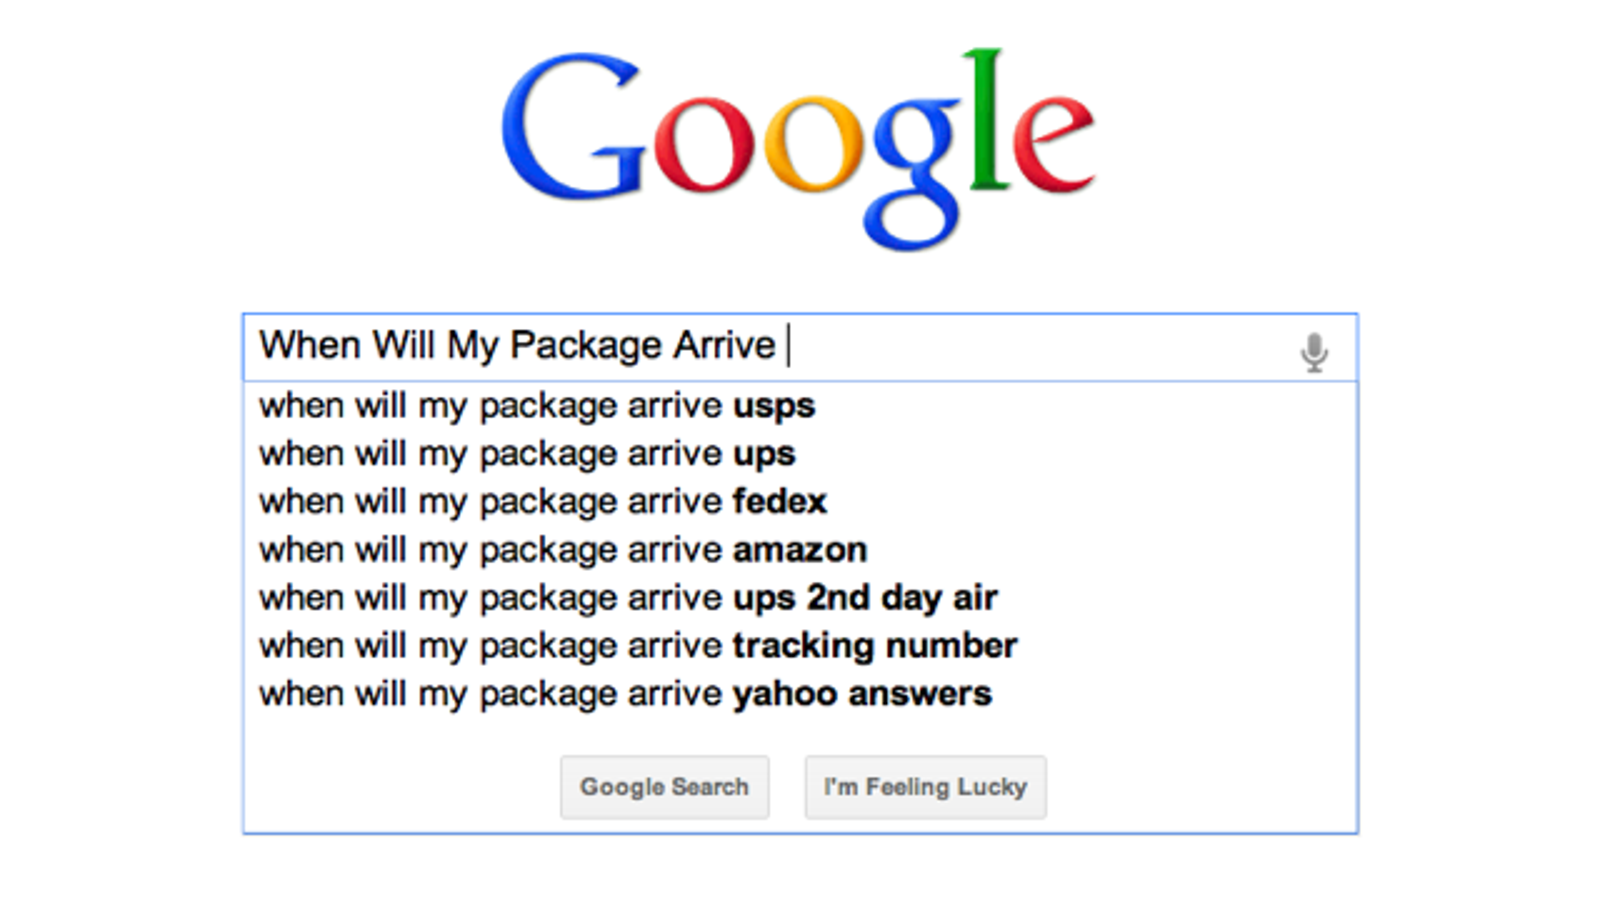 Does Google's Patent for Shipping Notifications Mean They